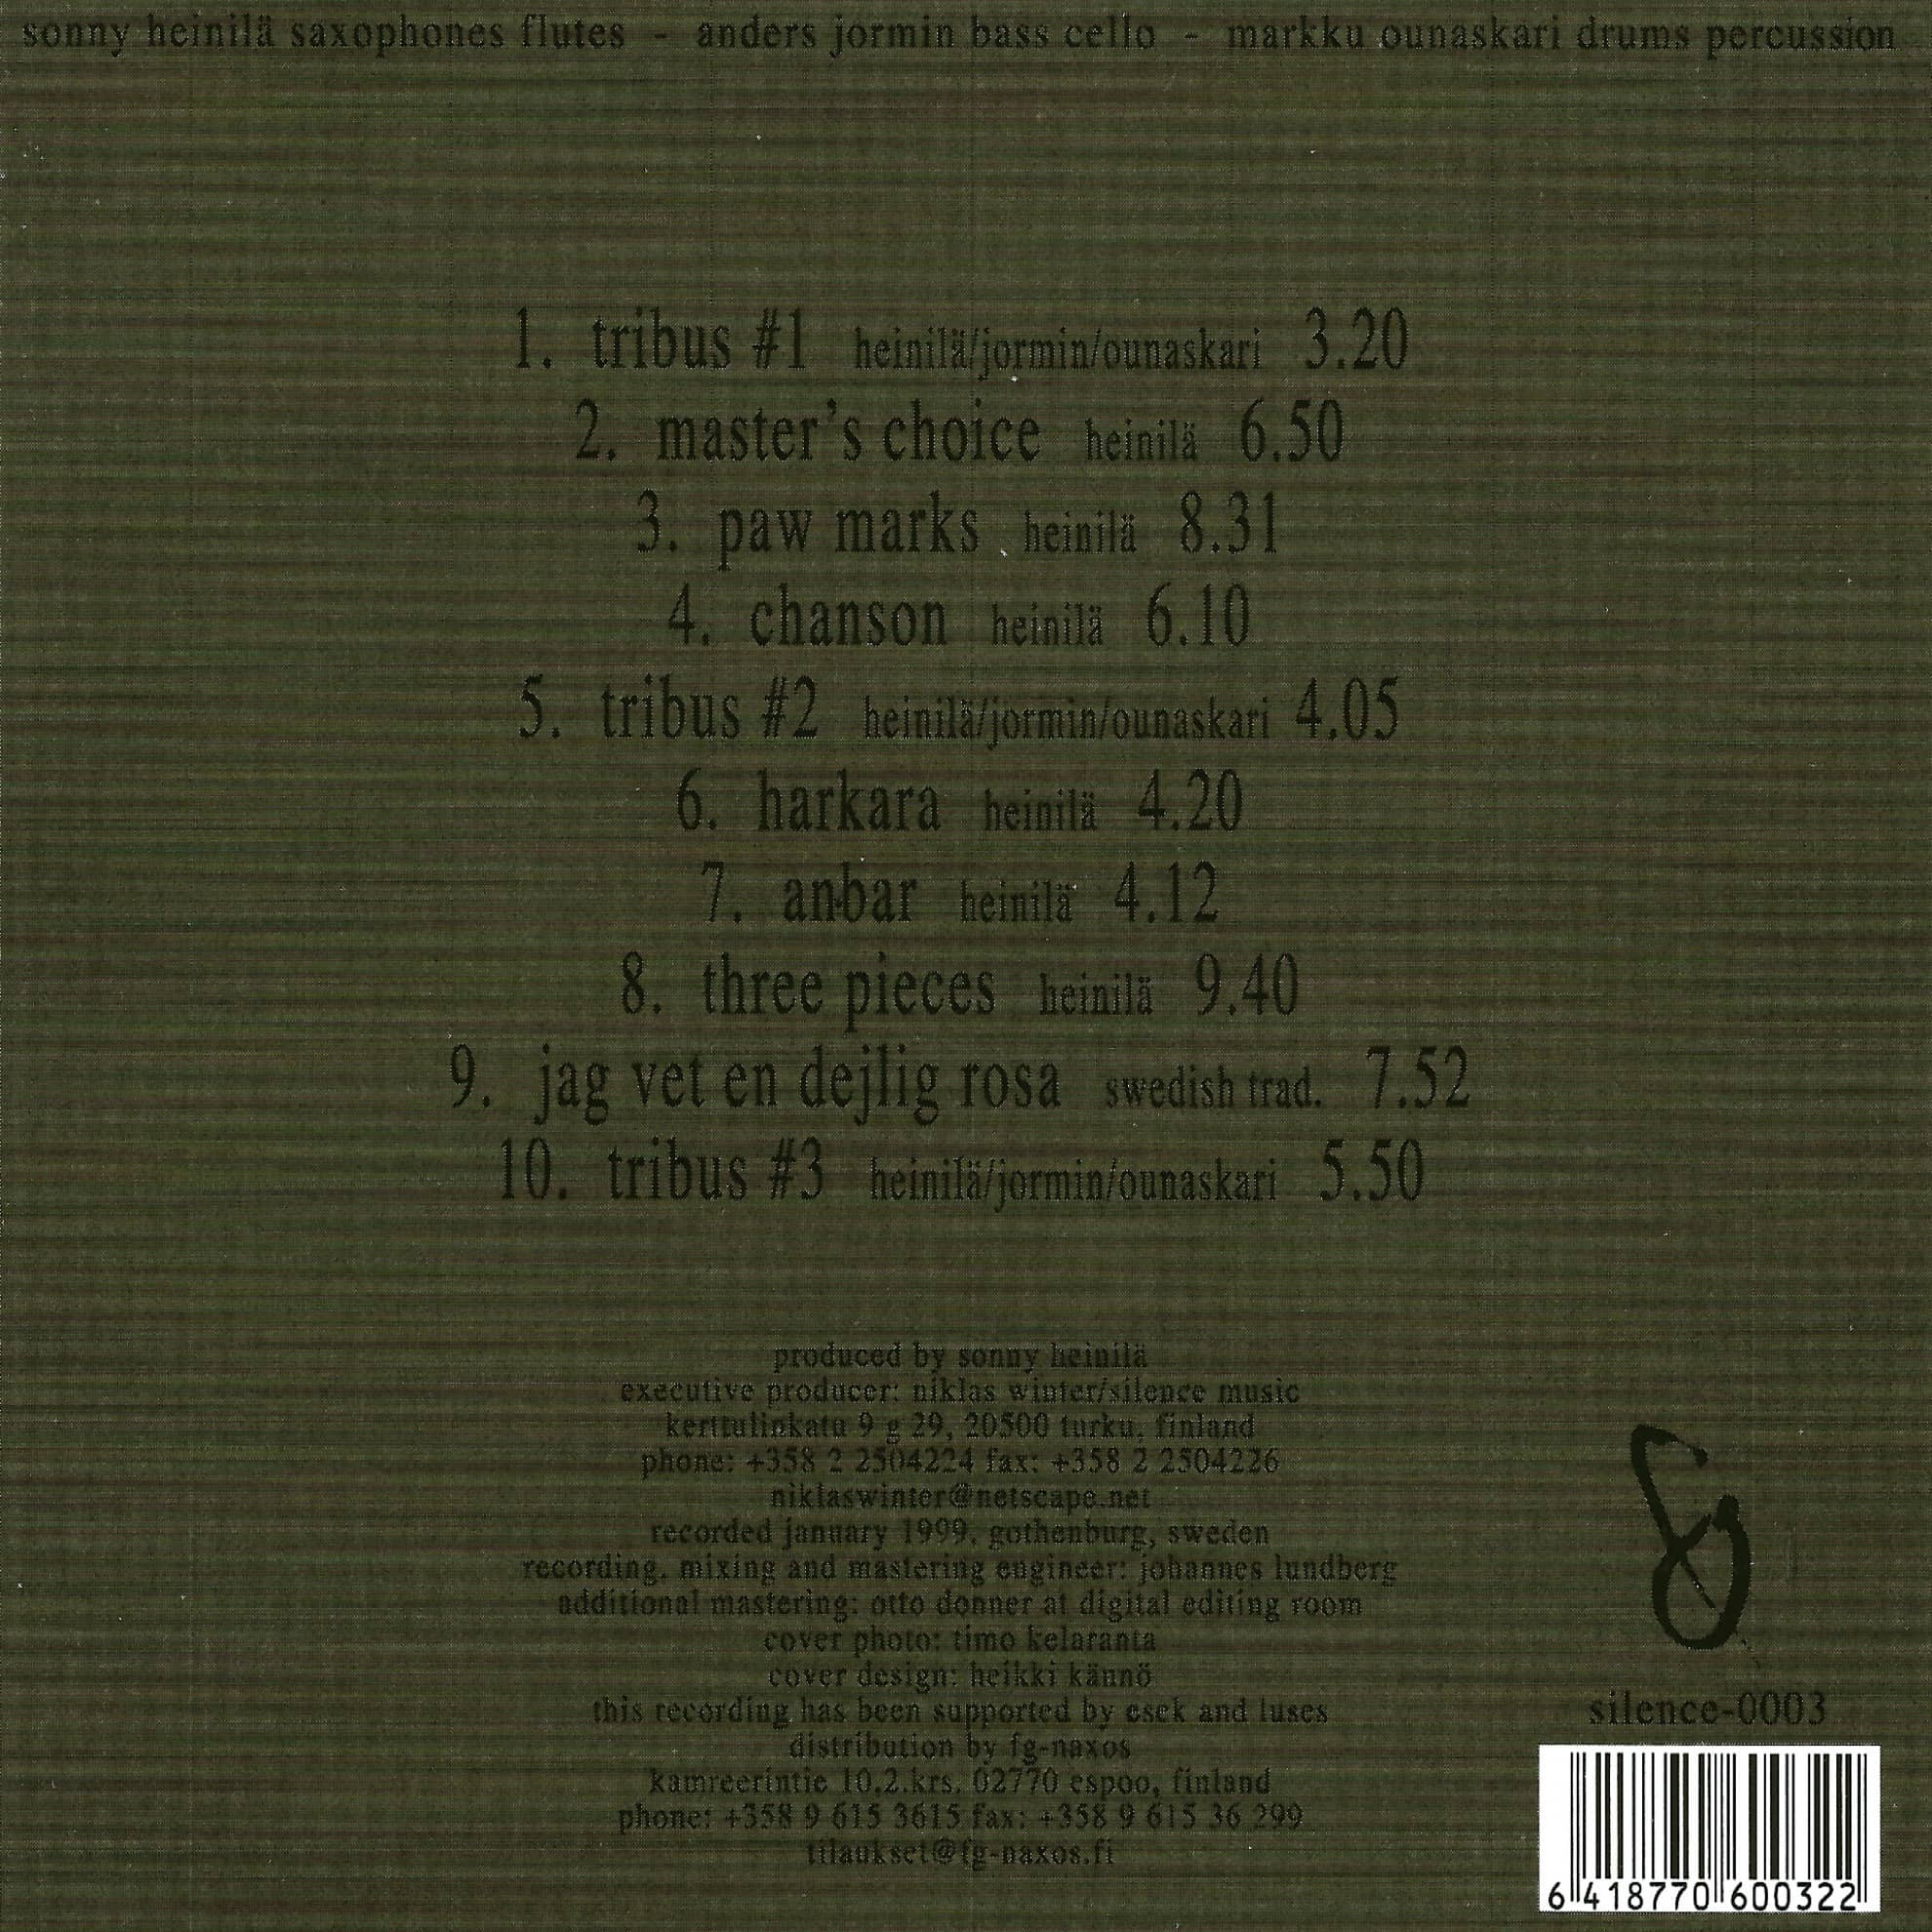 Tribus back cover (1980X1980)